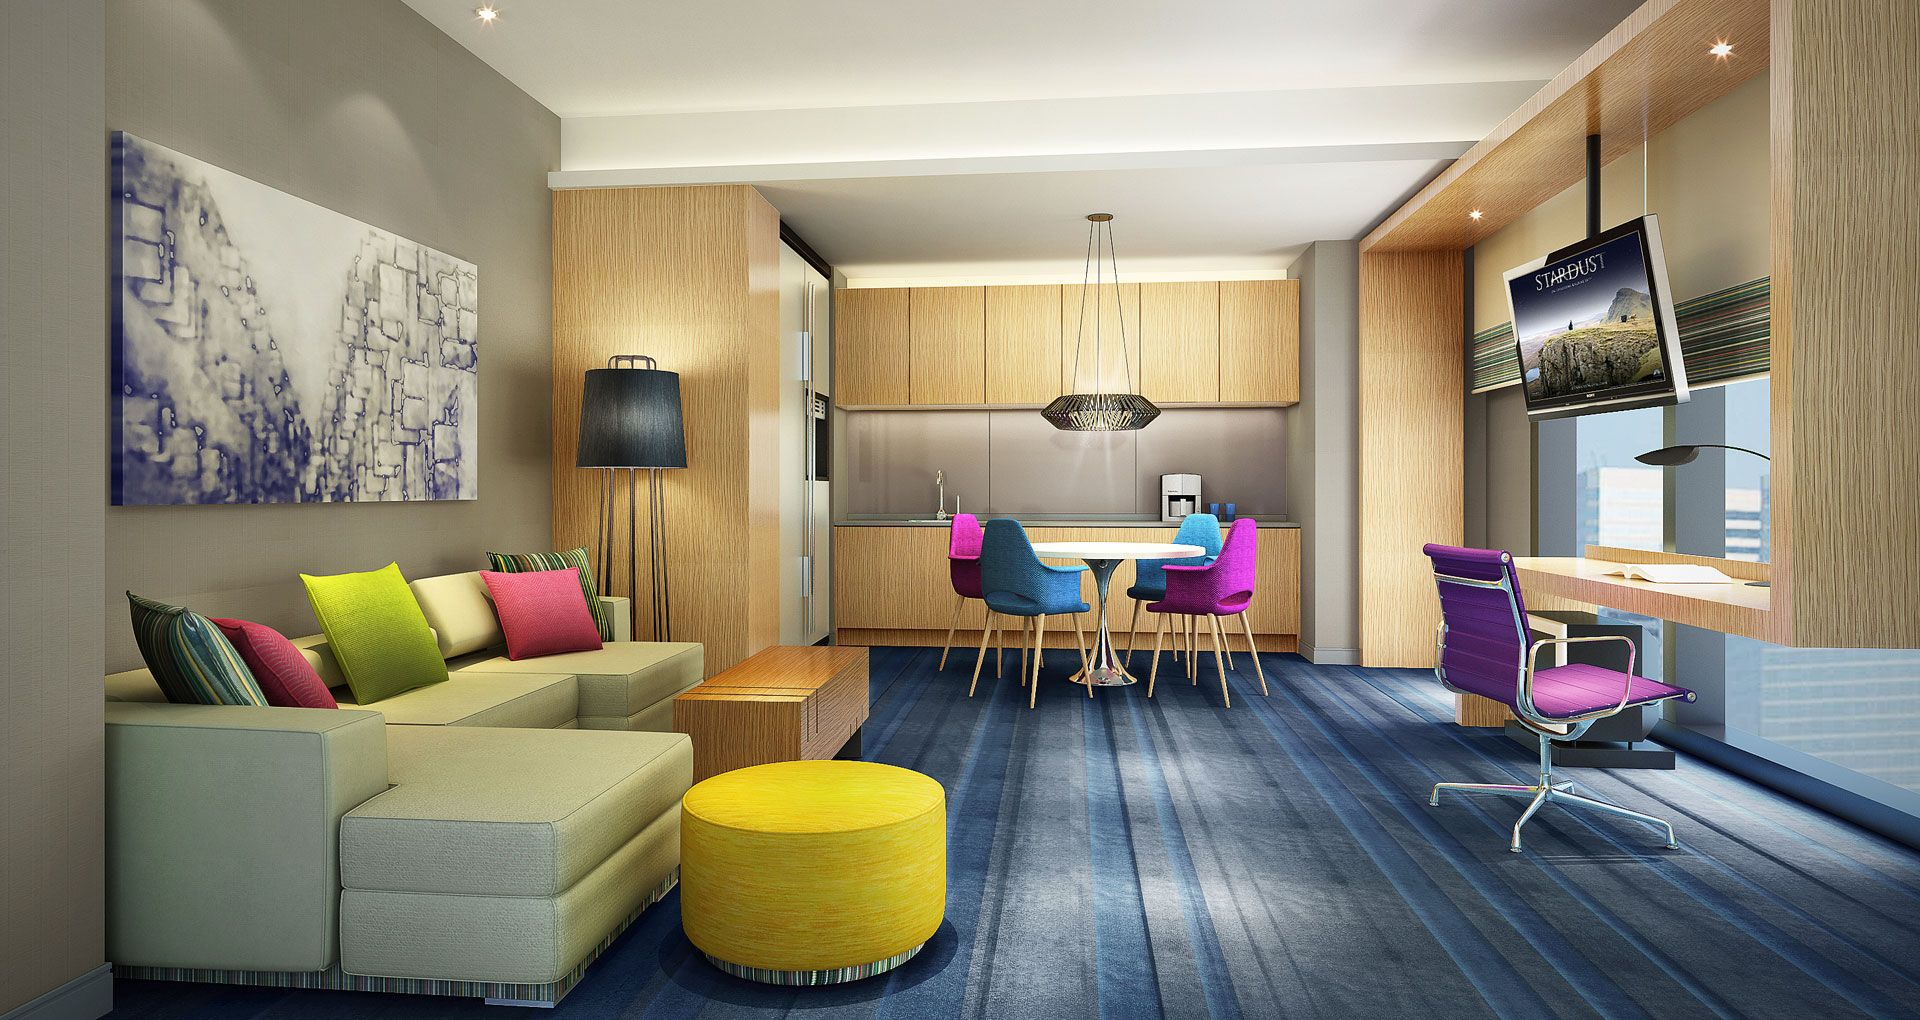 ALOFT Guangzhou Tianhe Hotel designed by Studio HBA. This hotel locates in the downtown area of Guangzhou and it is one of the earliest ALOFT hotels developed in China mainland. Its design concept resembles the energetic and dynamic city in an innovative and contemporary fashion, whilst staying in line with Starwood Aloft standard brand identity.